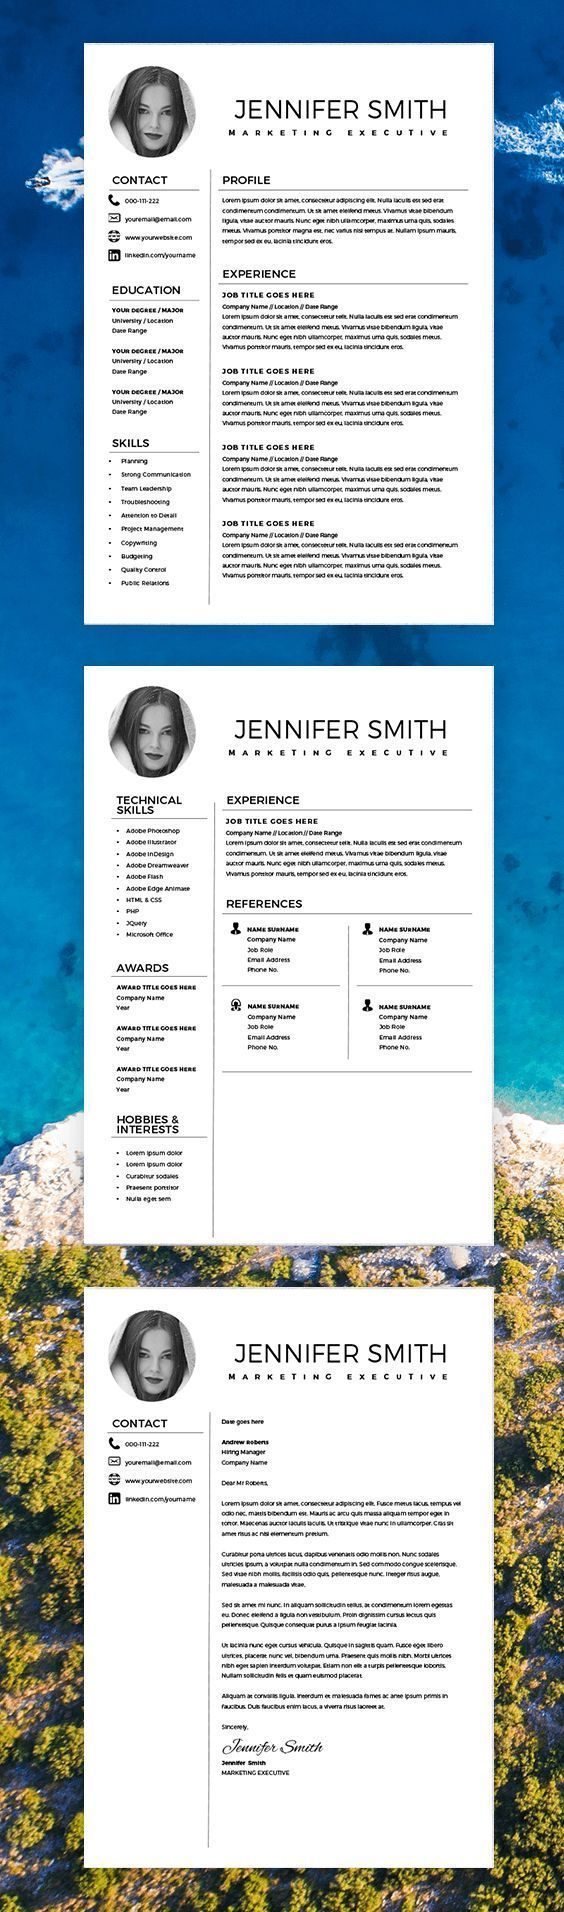 Resume with Photo, Marketing Resume Template, Resume Template Word ...